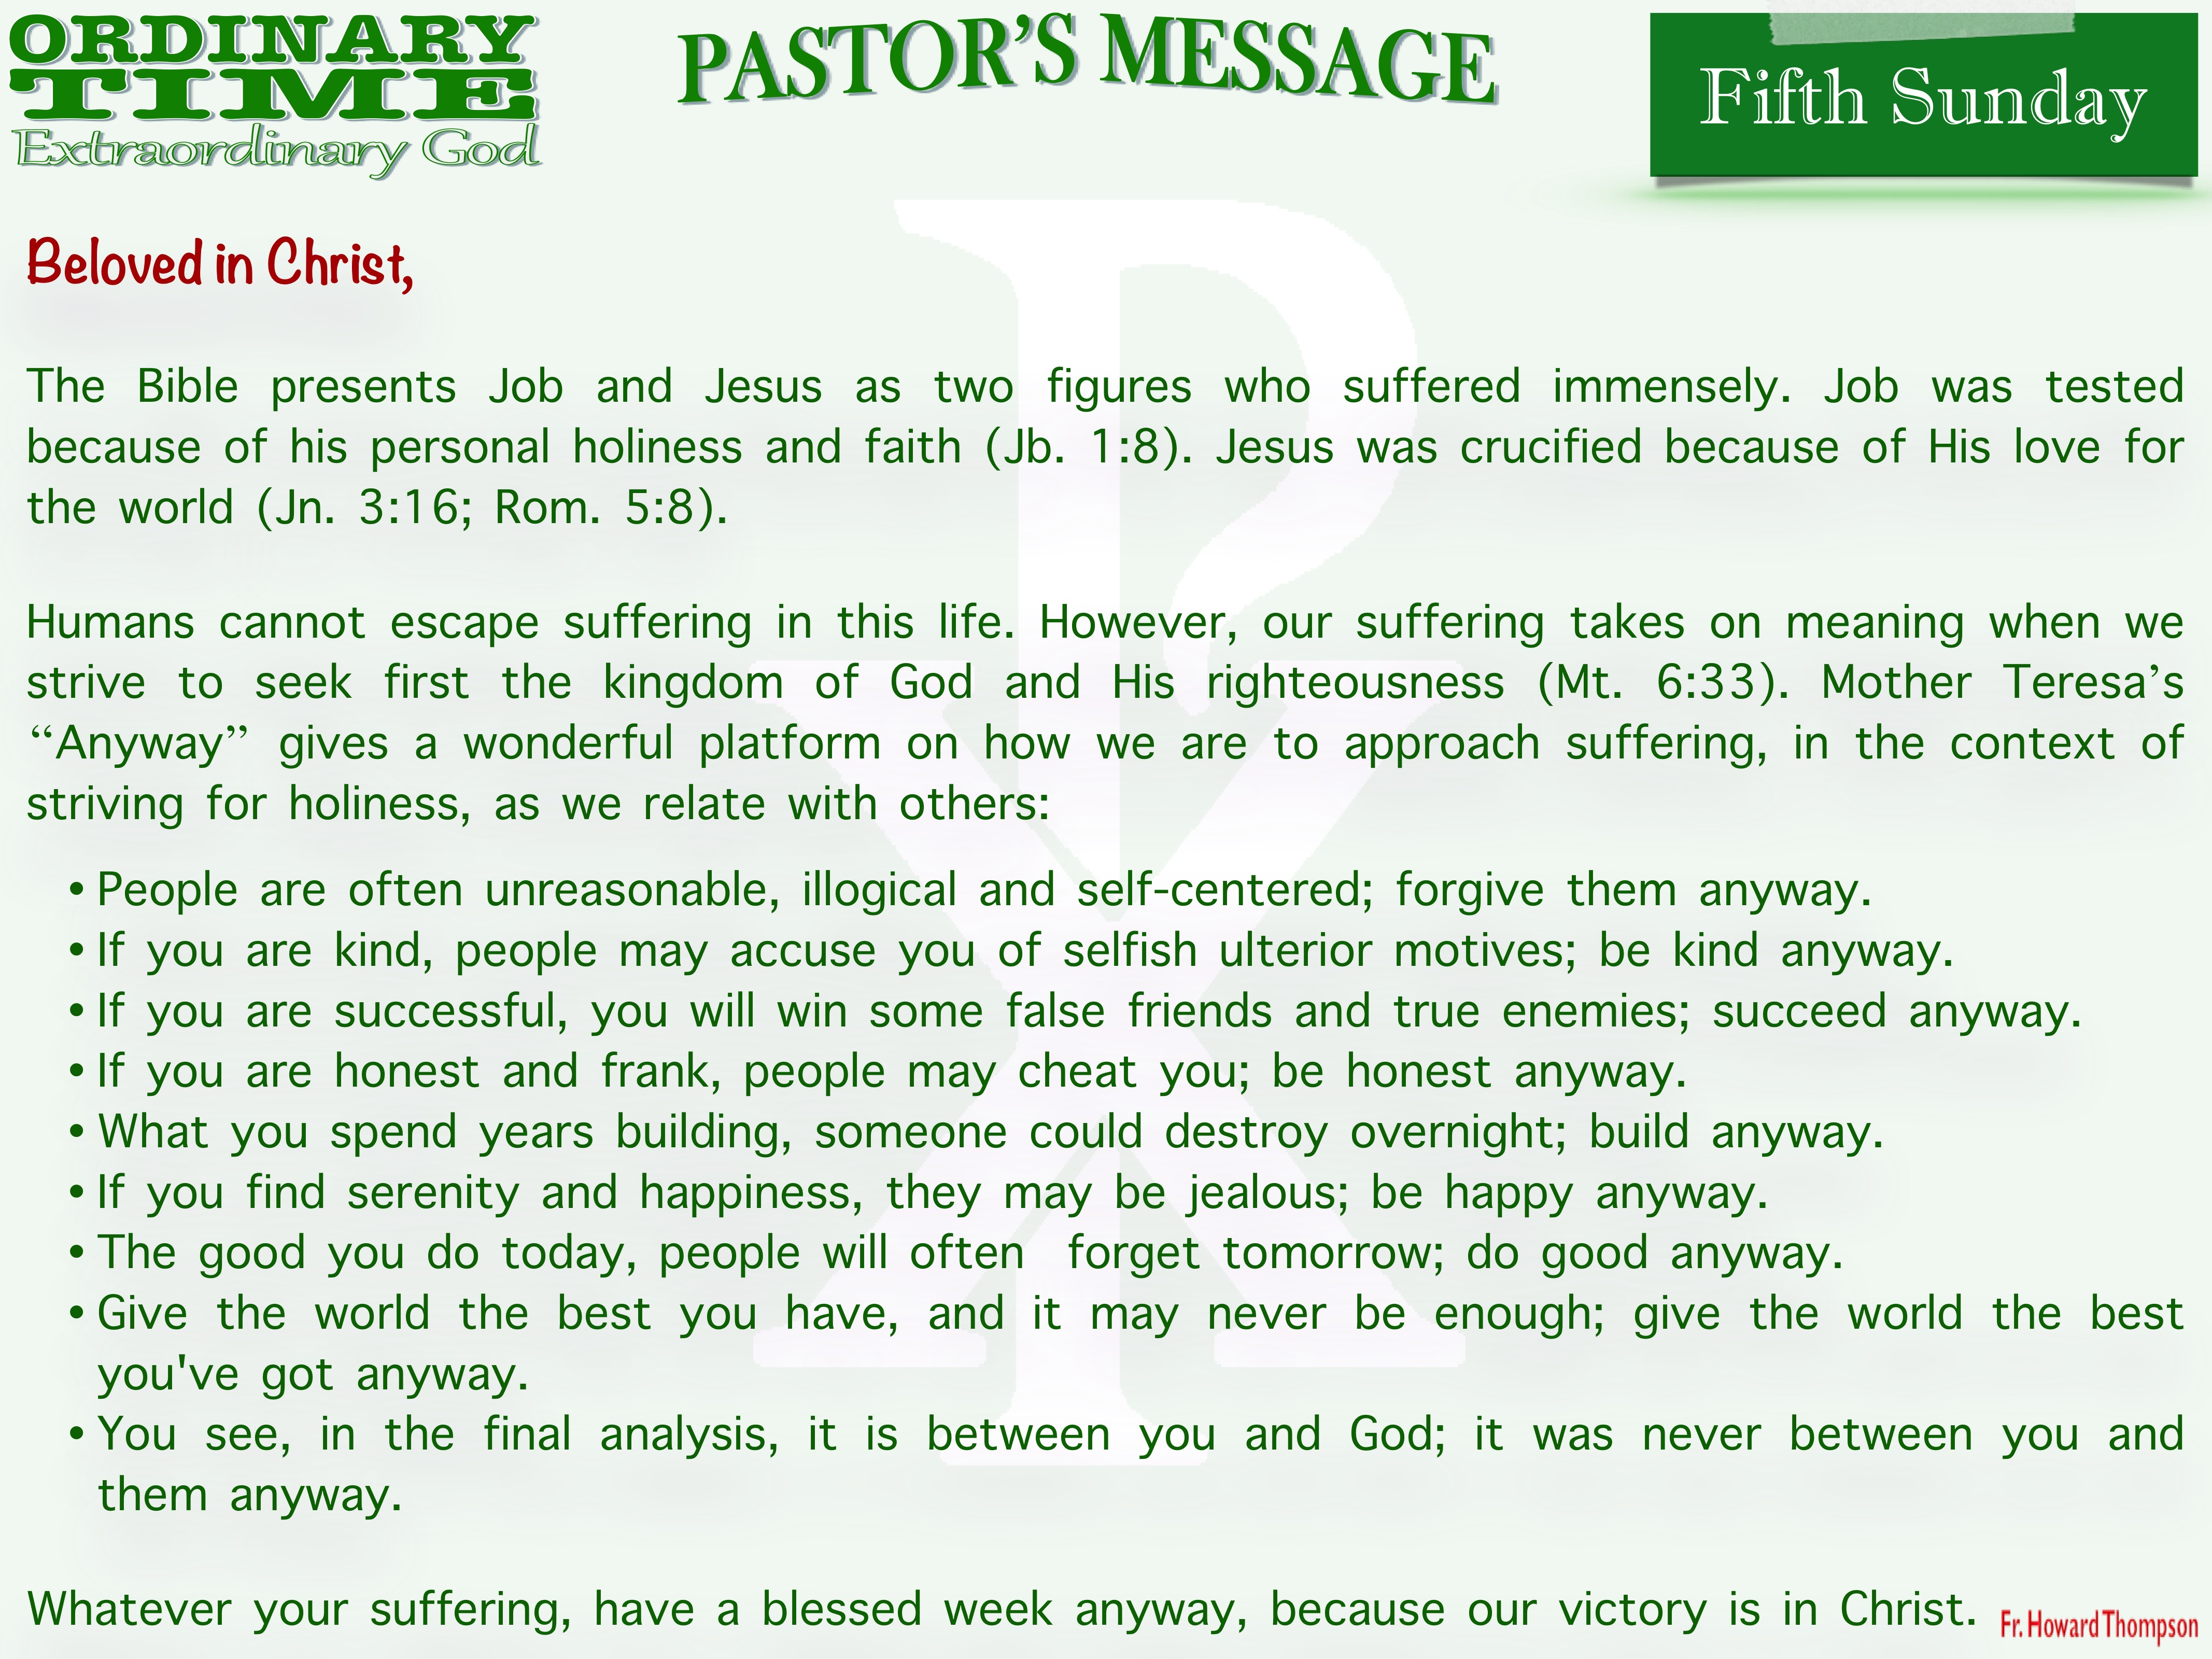 Pastor's Message - 04 Fifth Sunday in Ordinary Time_001